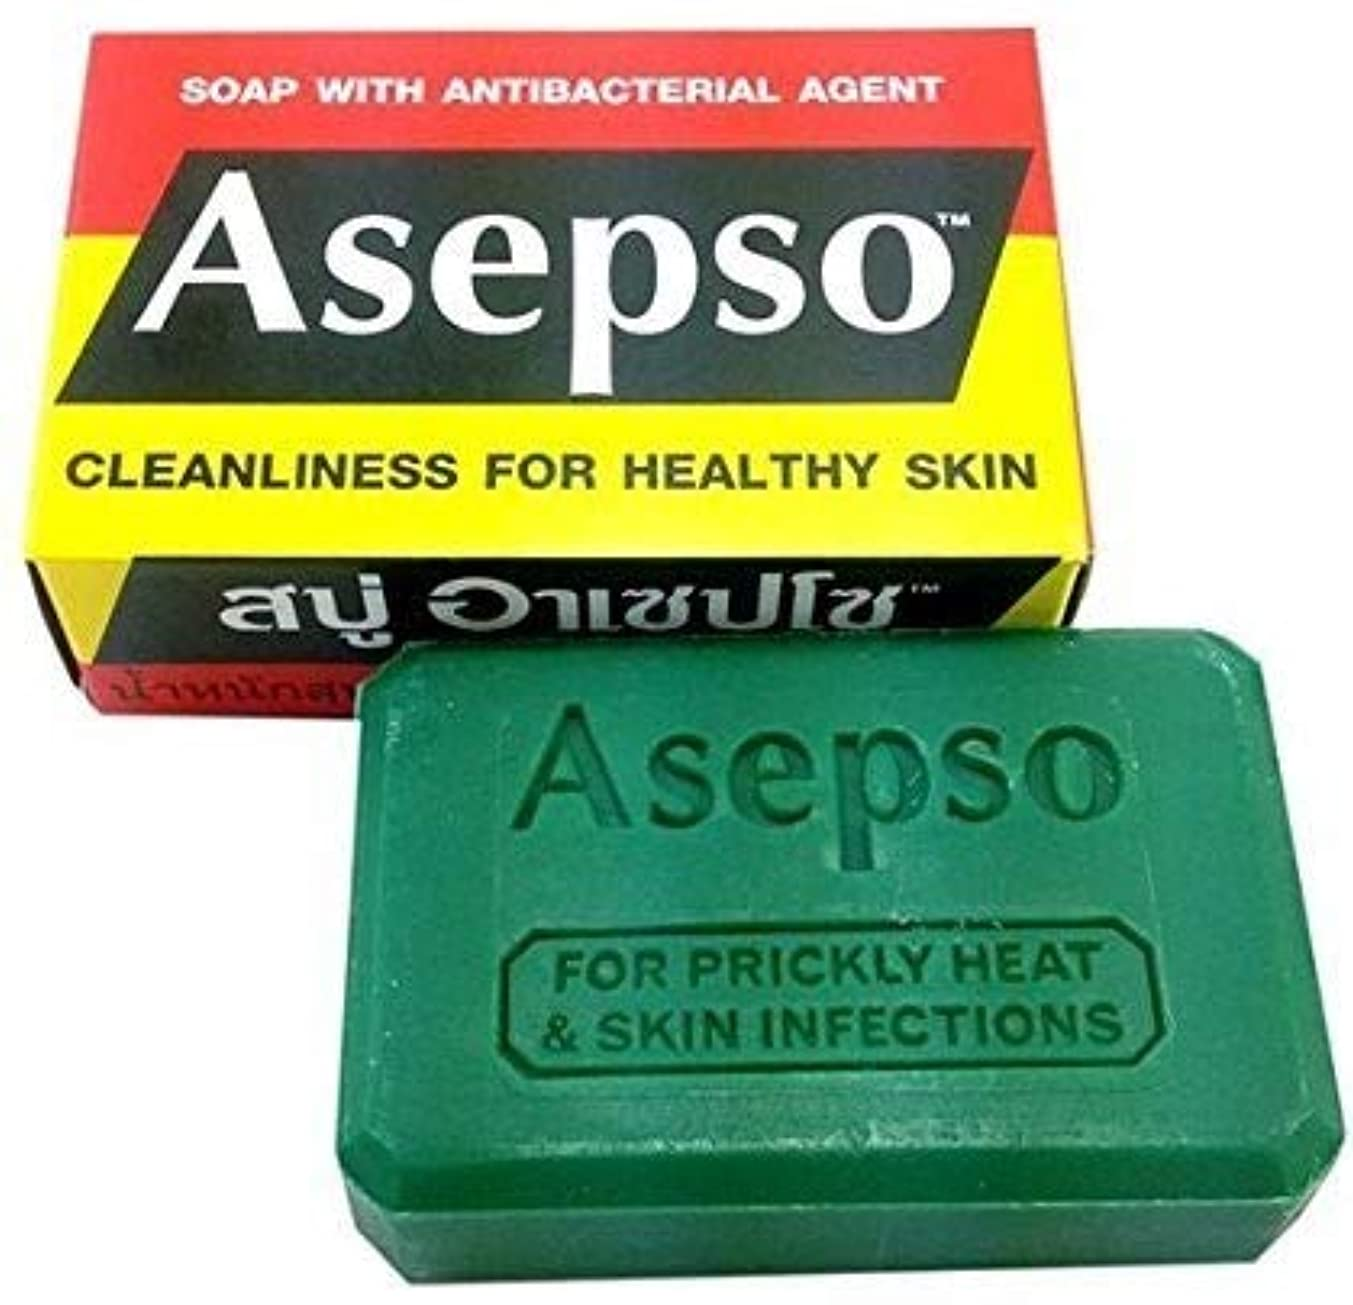 セージ道徳の手配するNi Yom Thai shop Asepso Soap with Antibacterial Agent 80 Grams